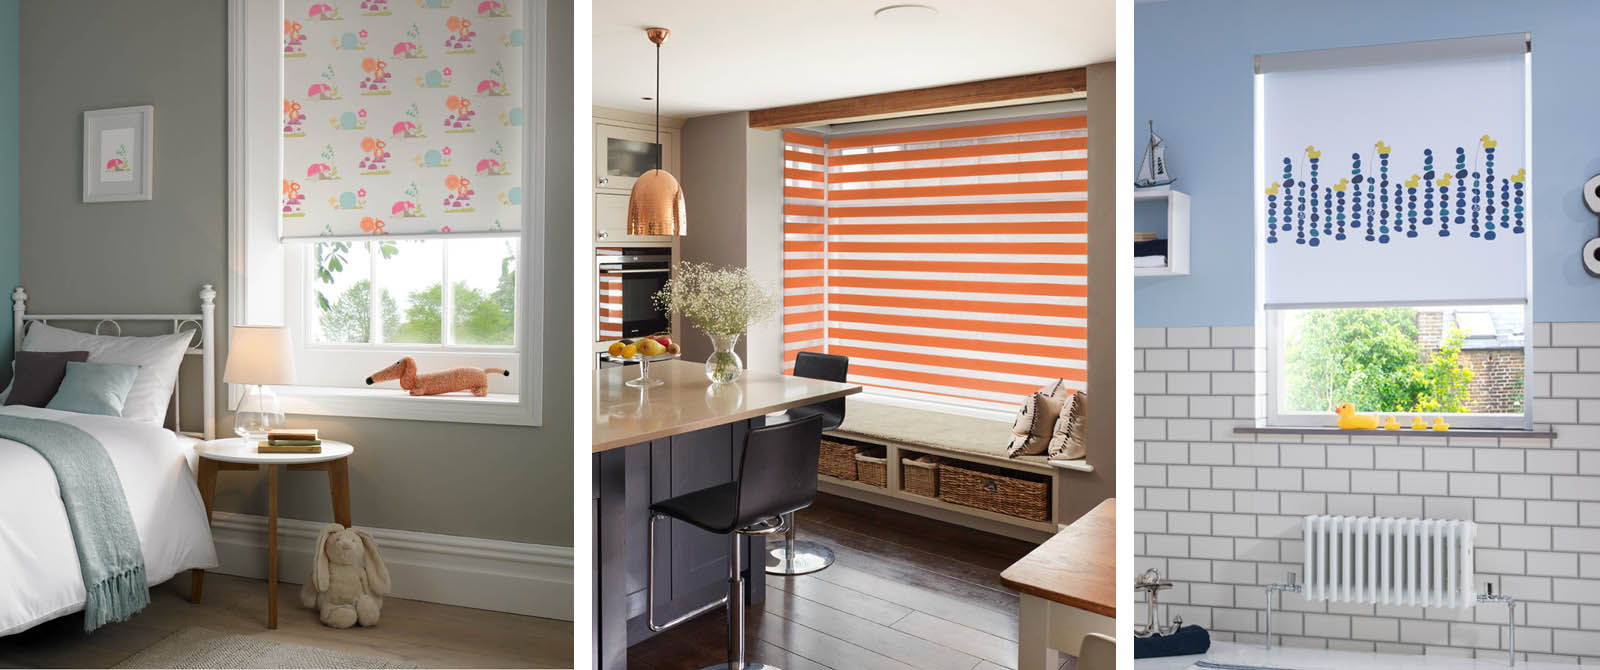 Roller Blinds from Blackmore Vale Blinds